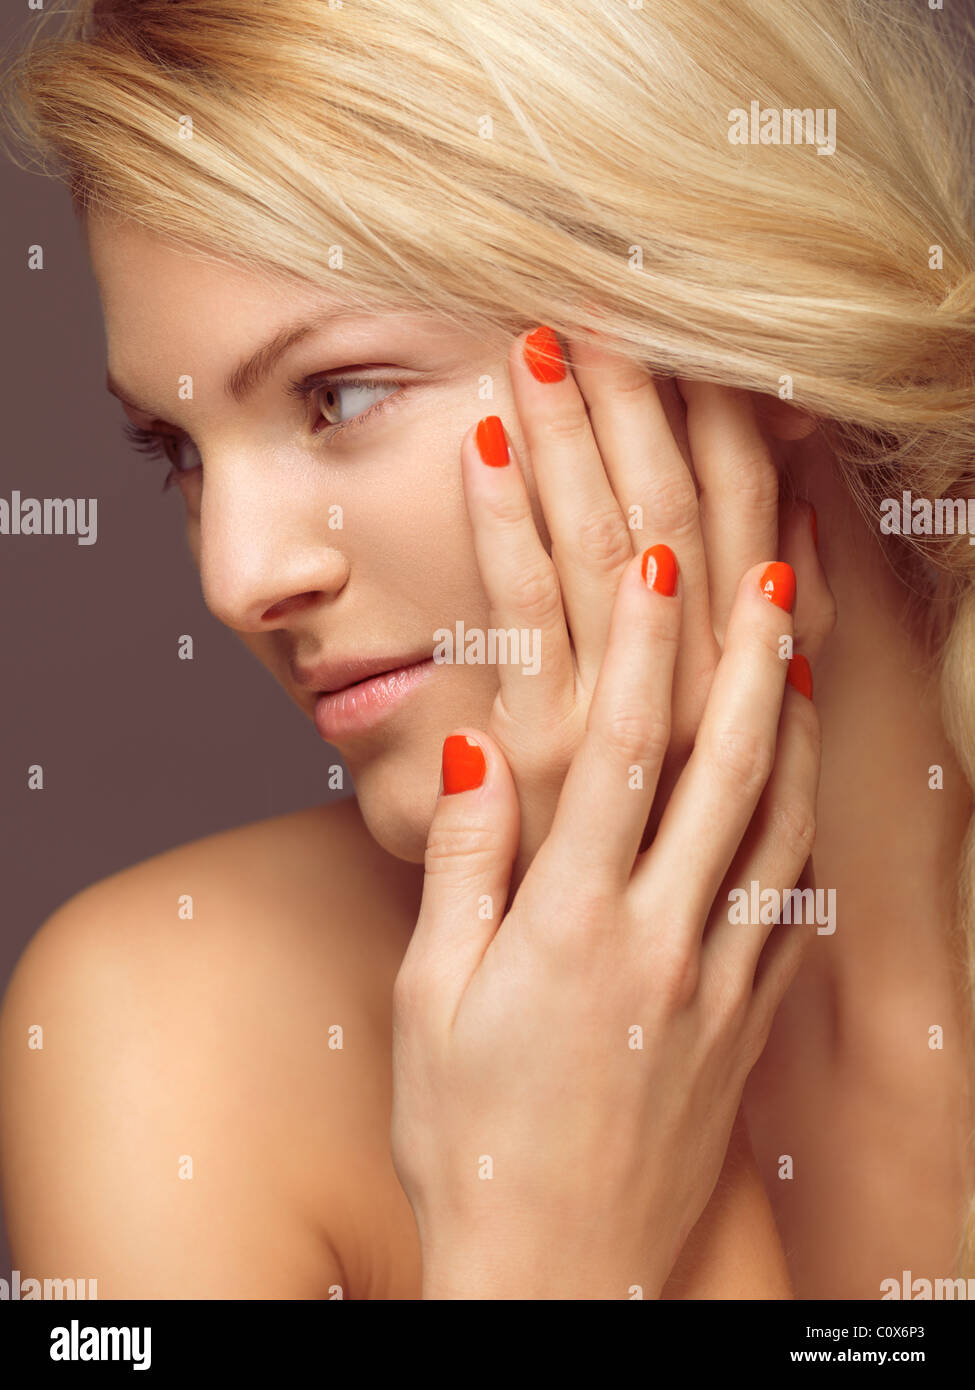 Beauty portrait of a young woman with bright orange nail polish - Stock Image